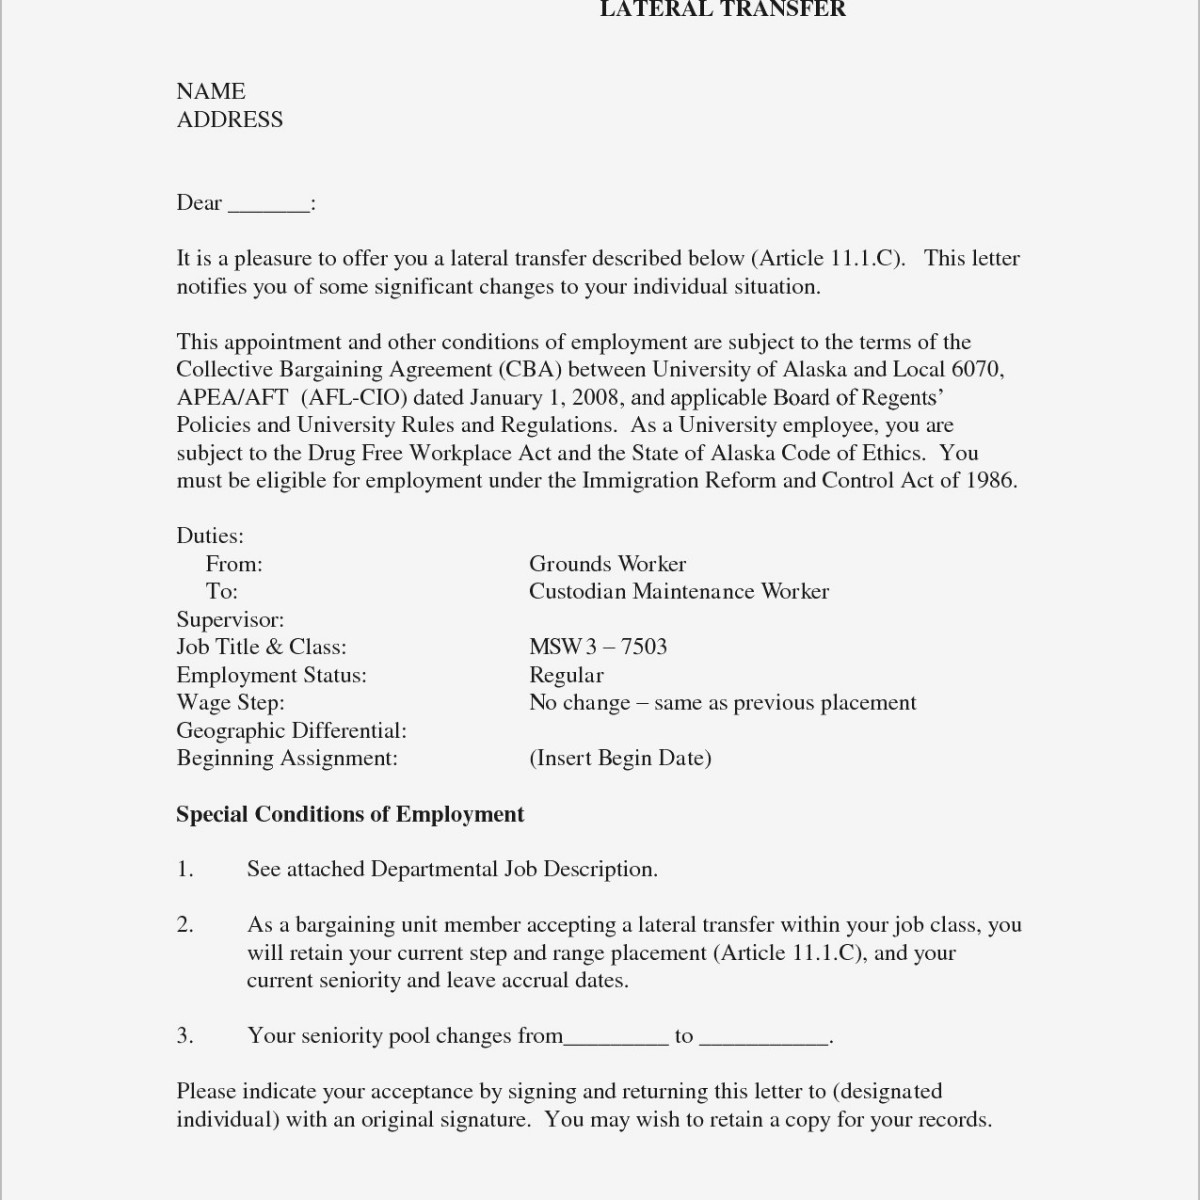 teacher assistant resume with no experience example-Teacher assistant Resume with No Experience Fresh Job Resumes Examples New Fresh Resume 0d Resume for 13-r